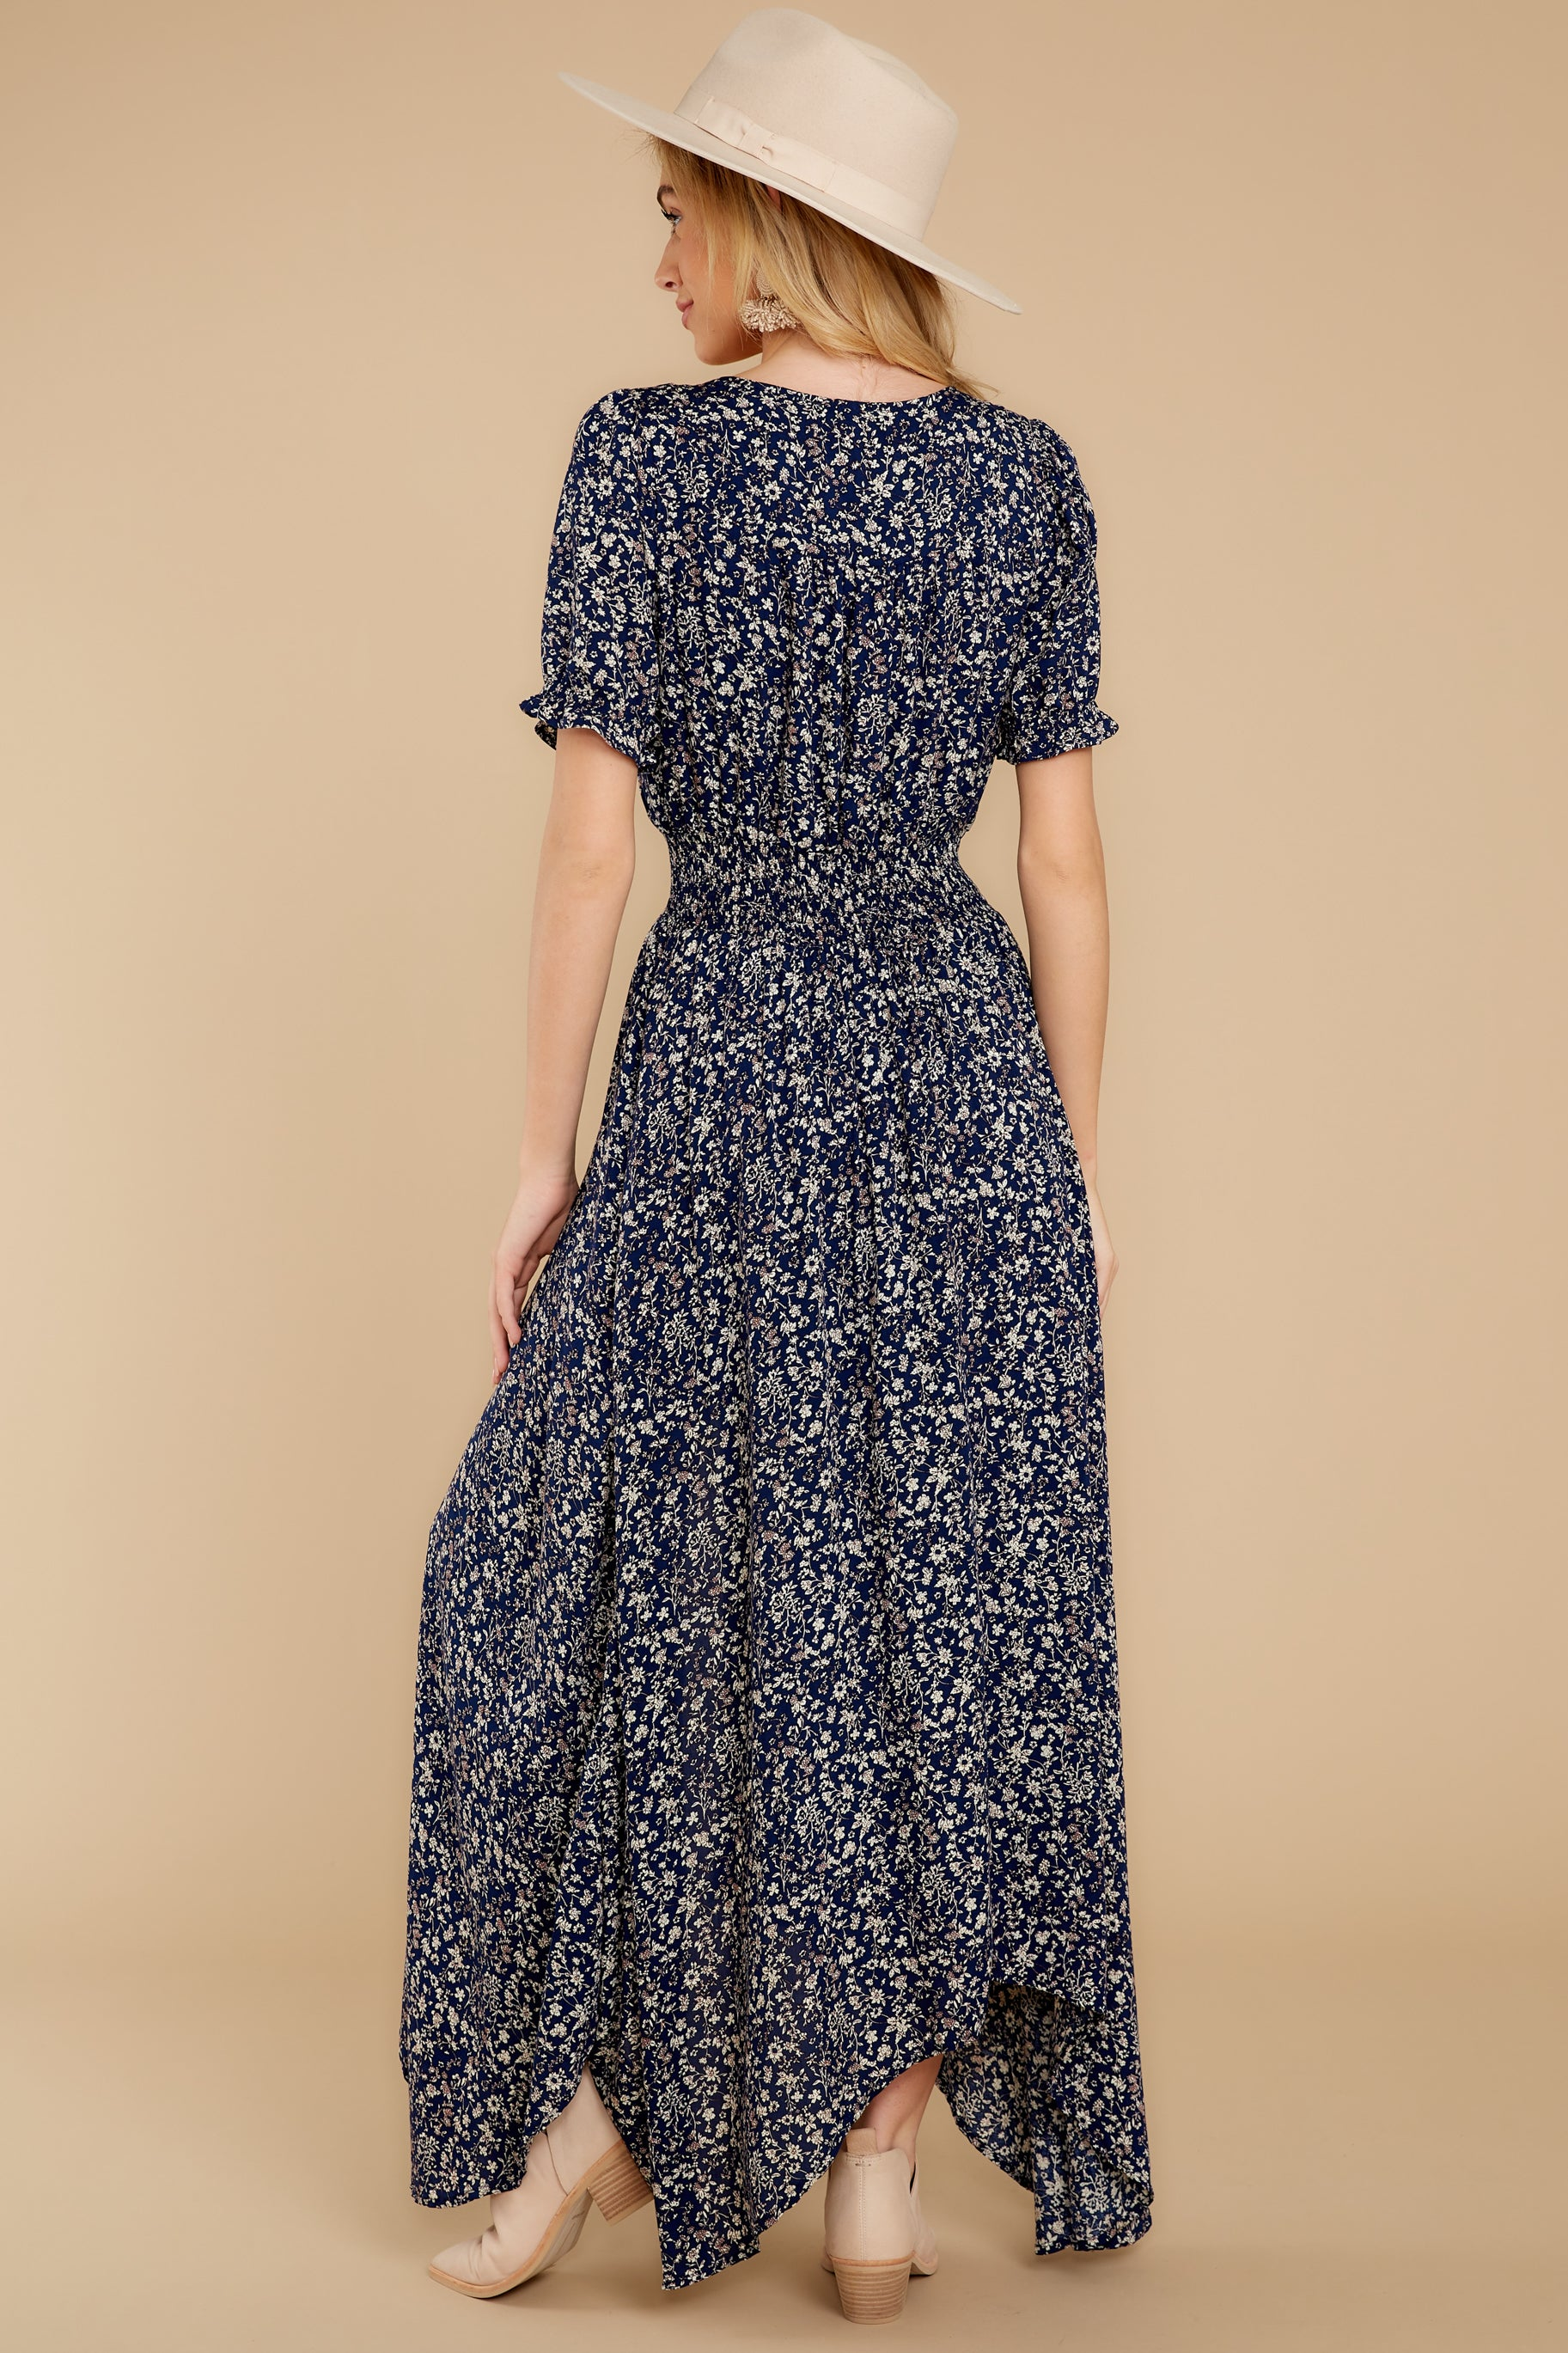 7 Cue From The Past Navy Print Maxi Dress at reddressboutique.com